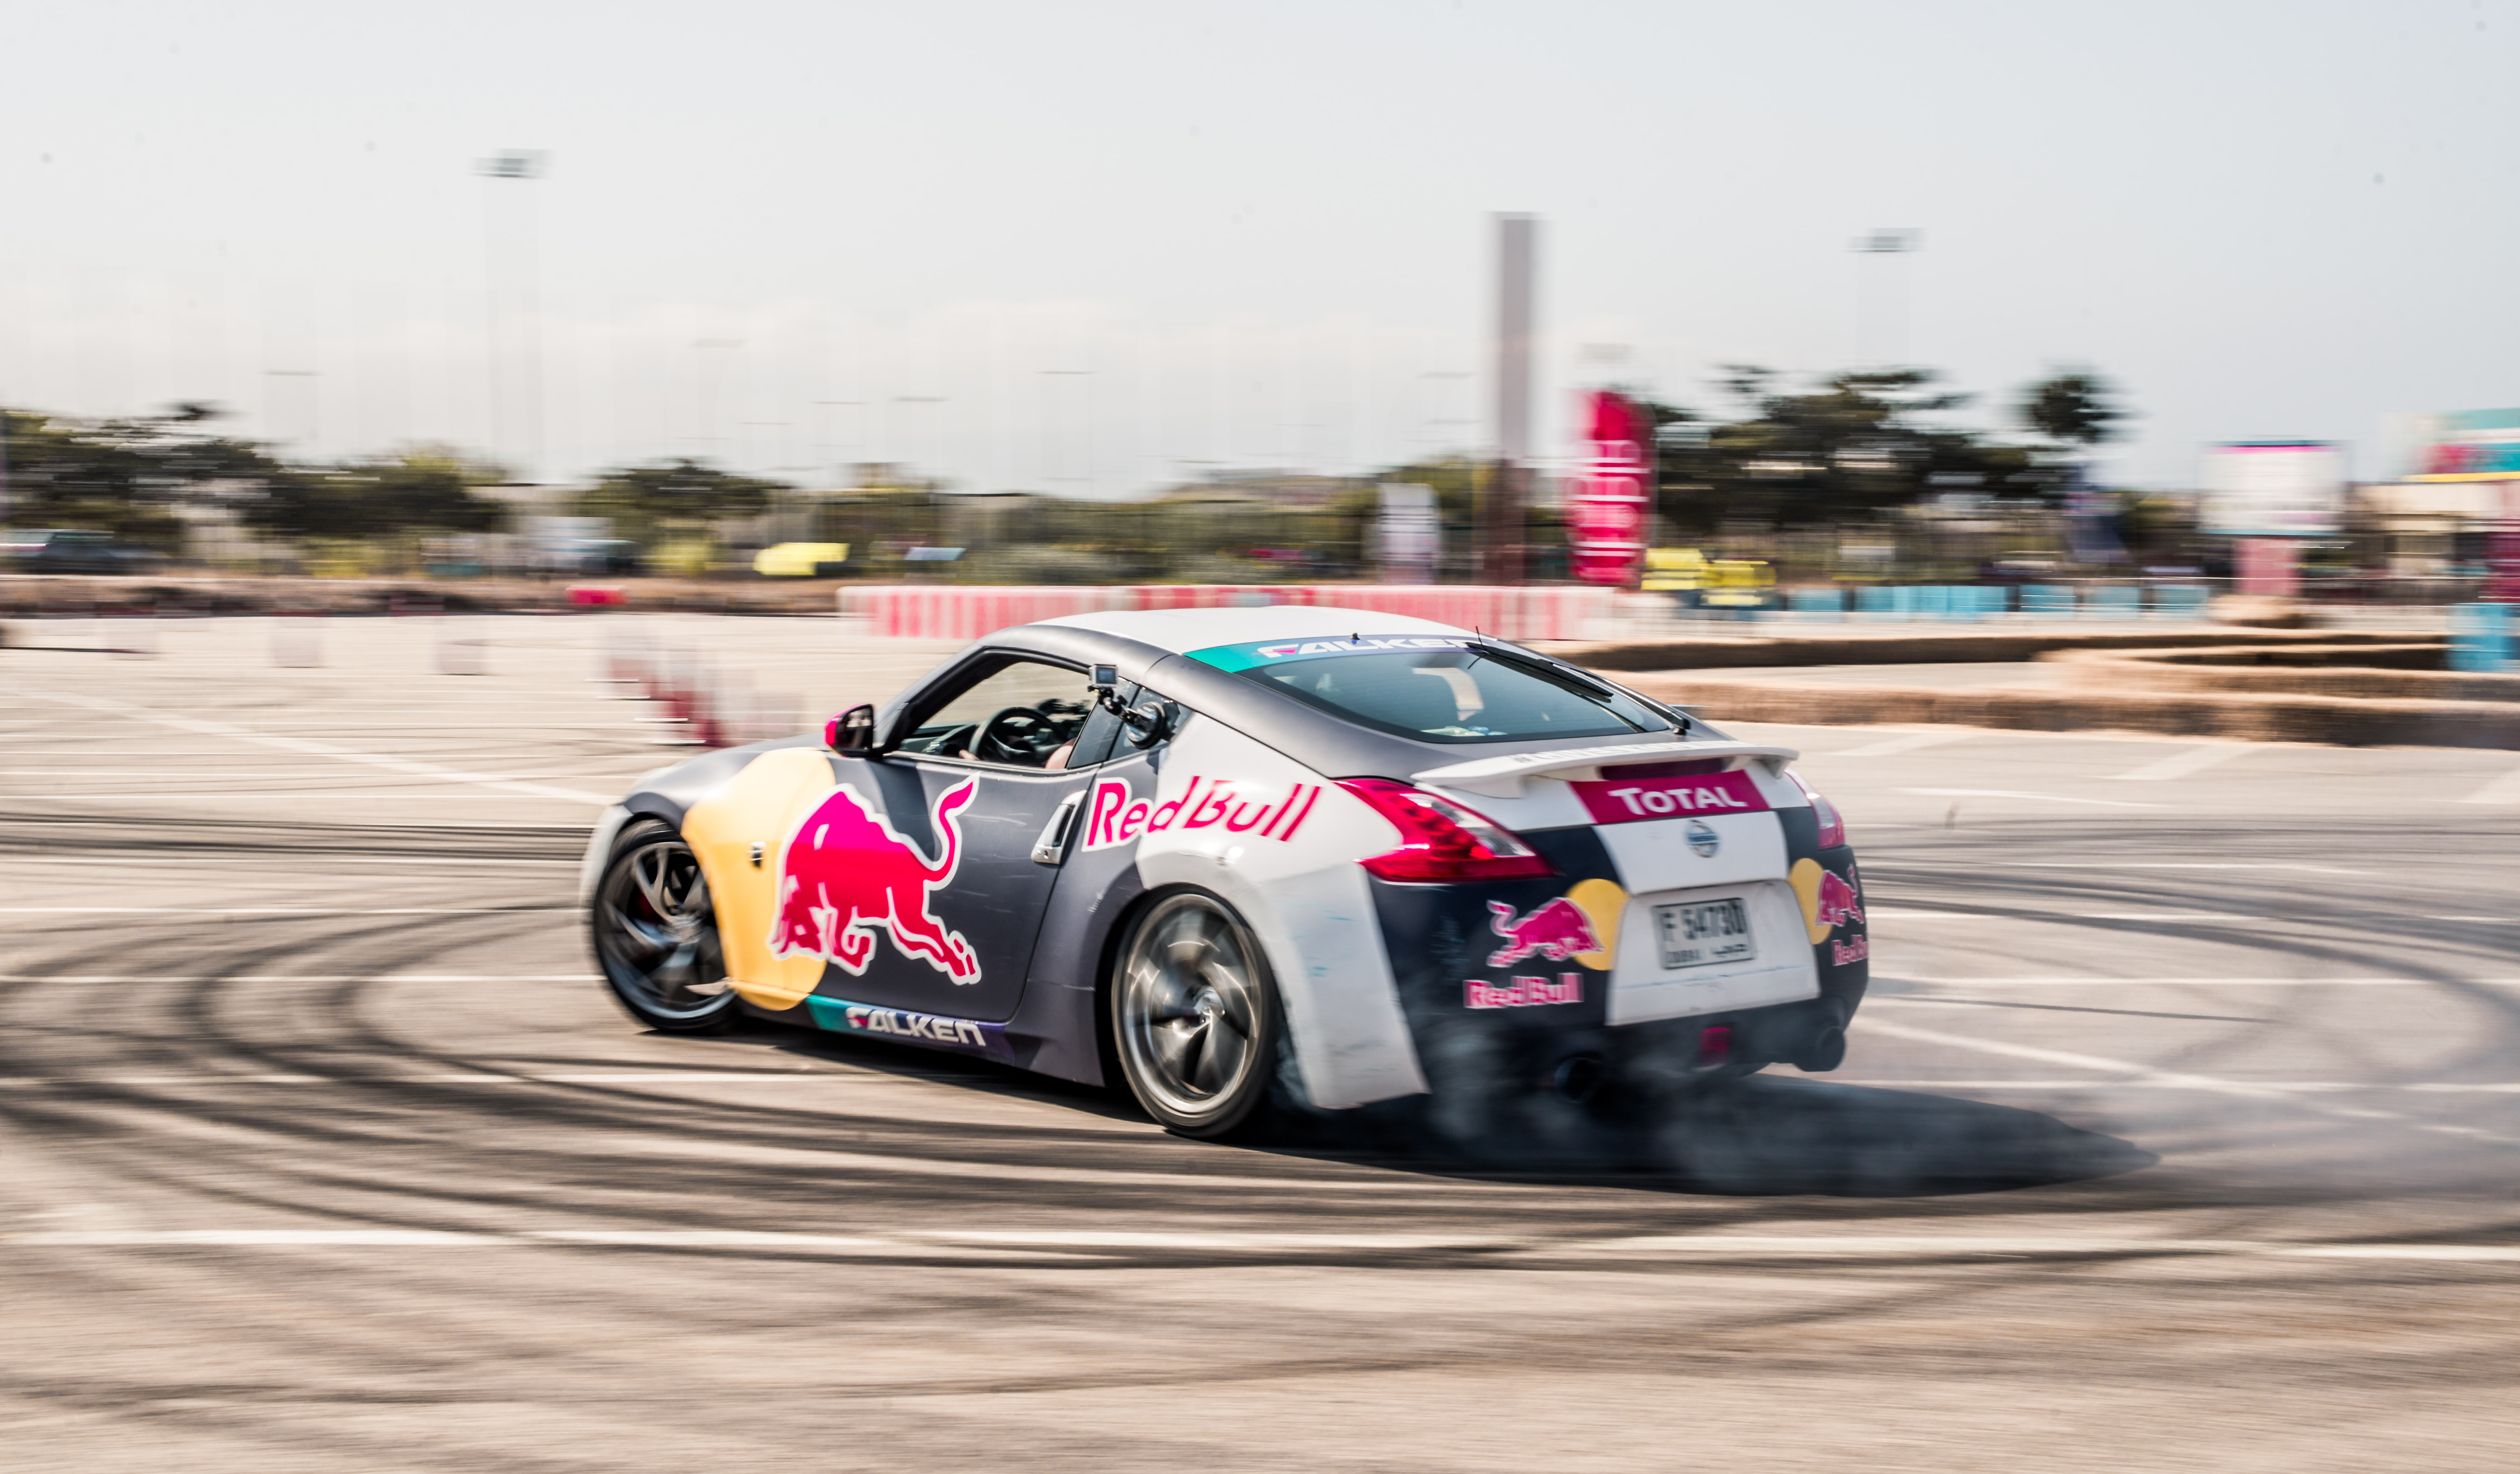 black and gray rally car performing drift